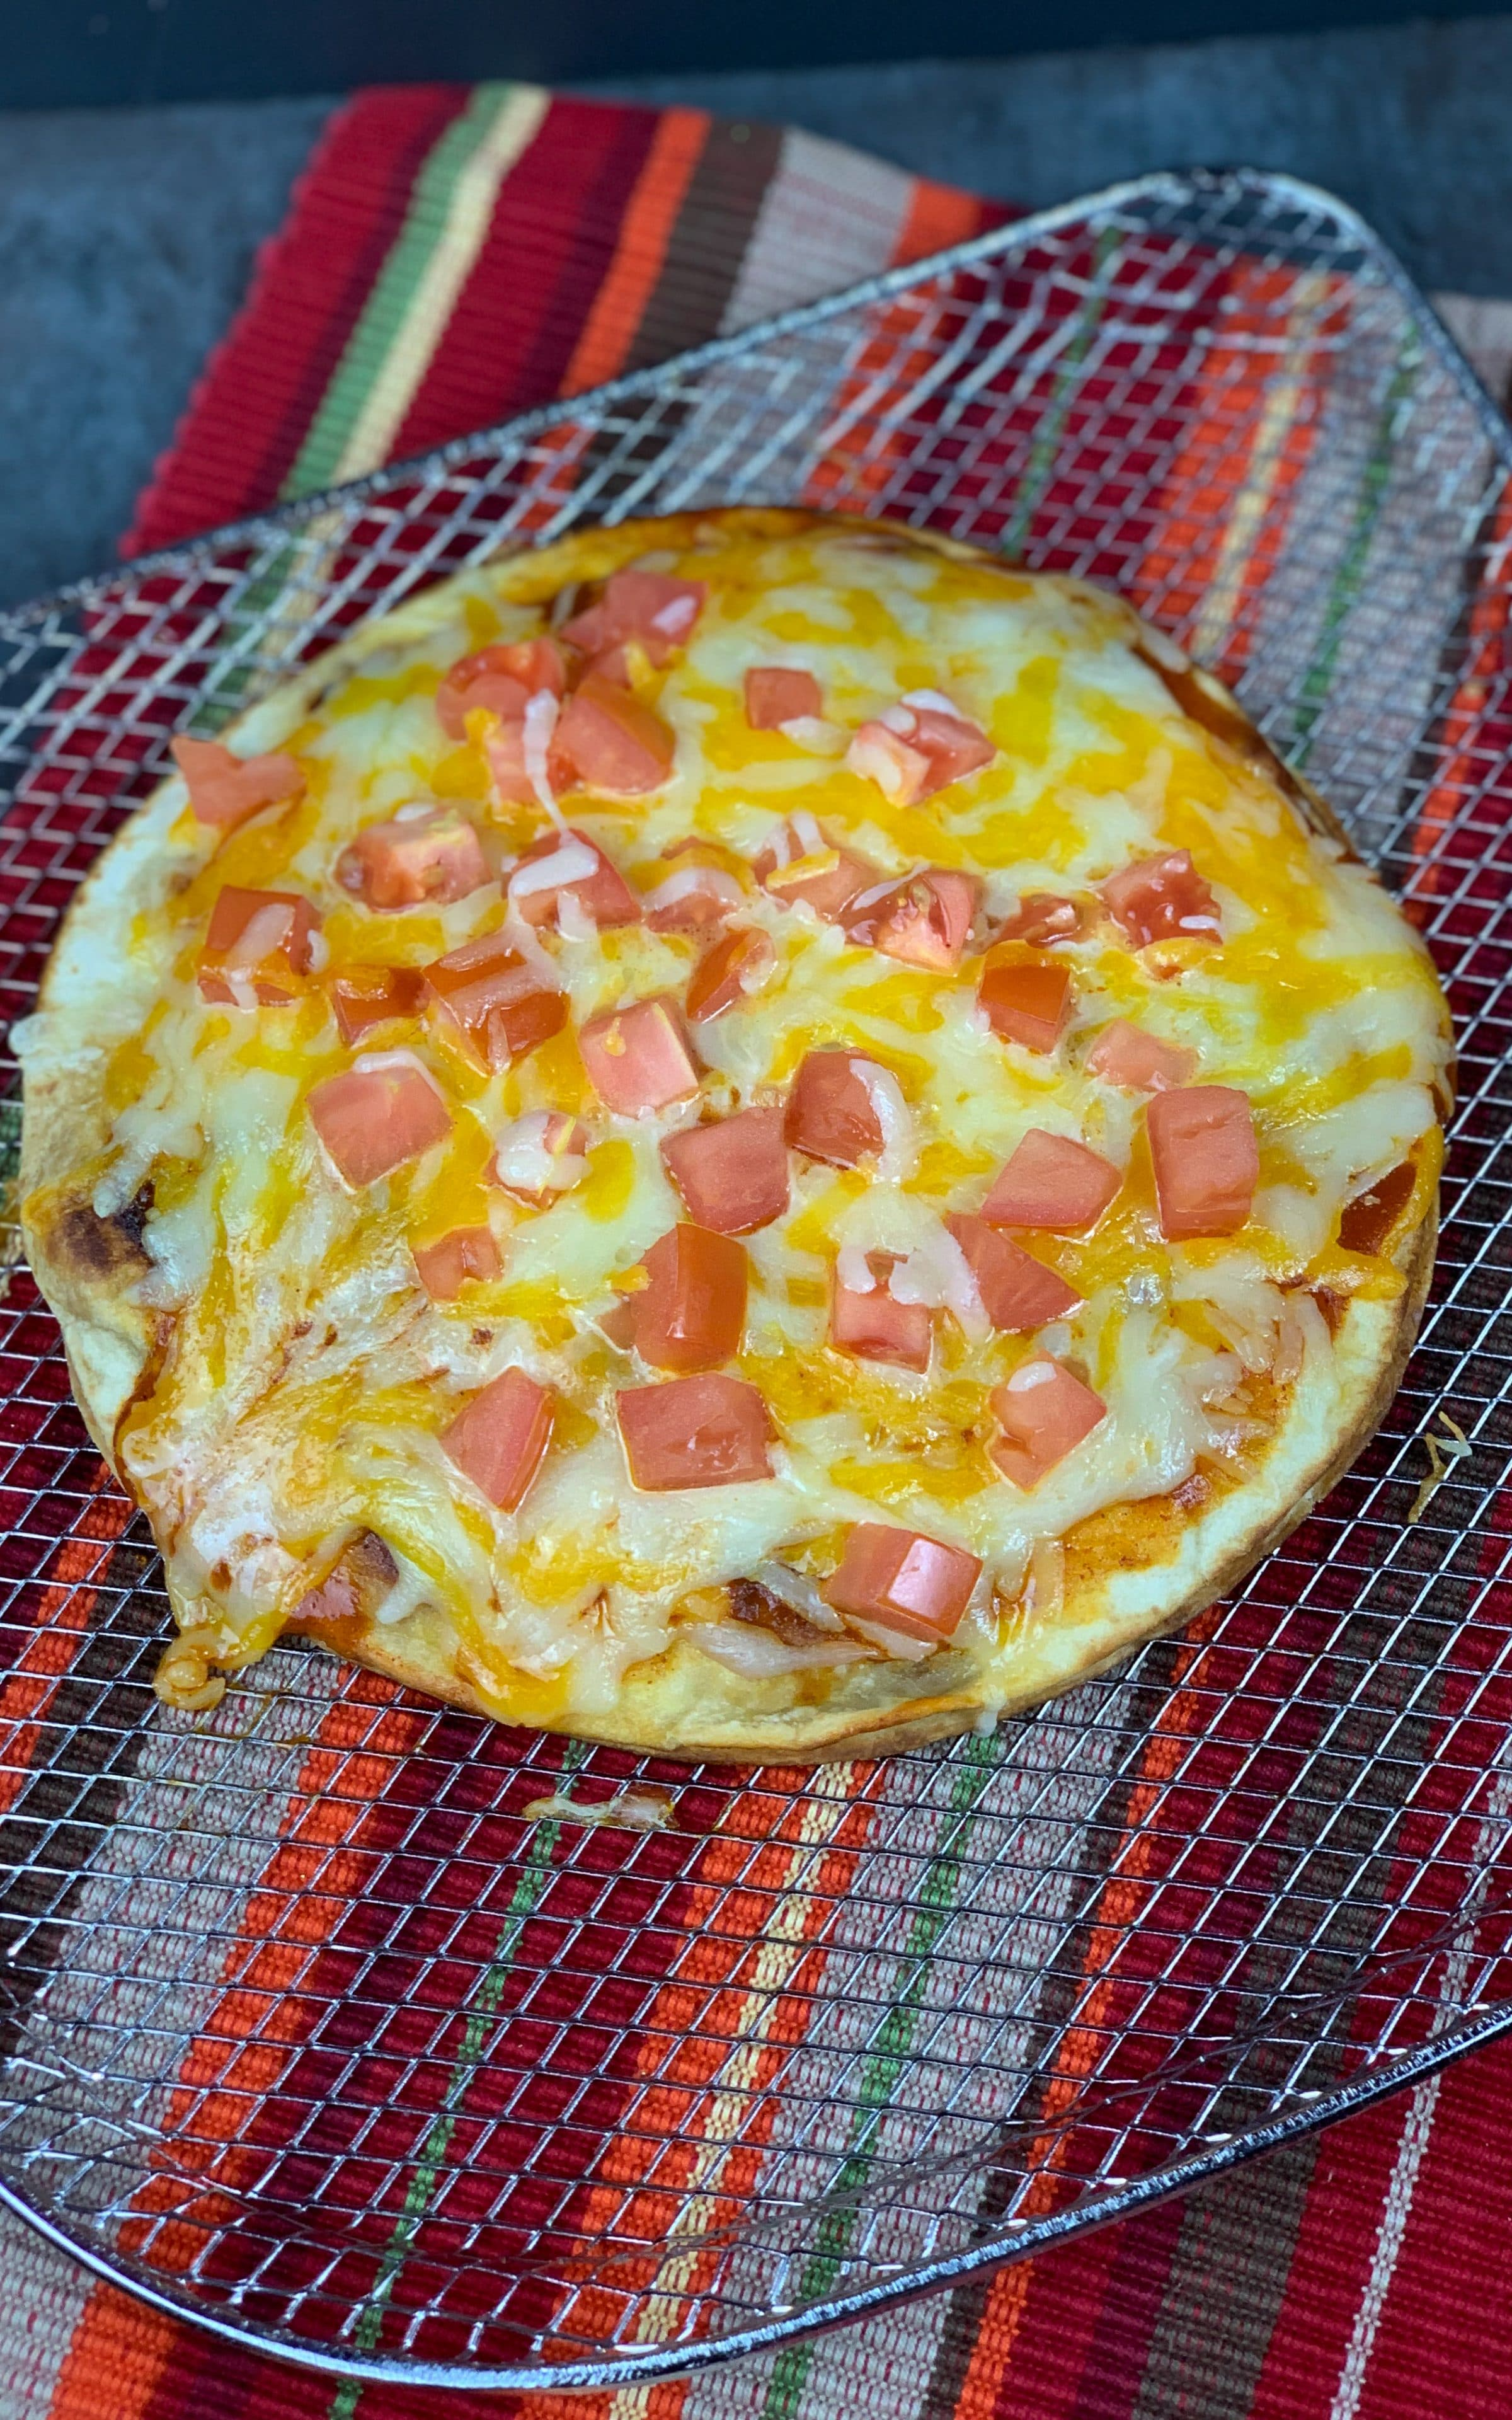 This Mexican pizza recipe is a great recipe to make in an air fryer or traditionally. My recipe was inspired by the taco bell Mexican pizza. #mexicanfoodrecipes #mexican #mexicanfood #recipes #pizza #tacos #tacotuesday